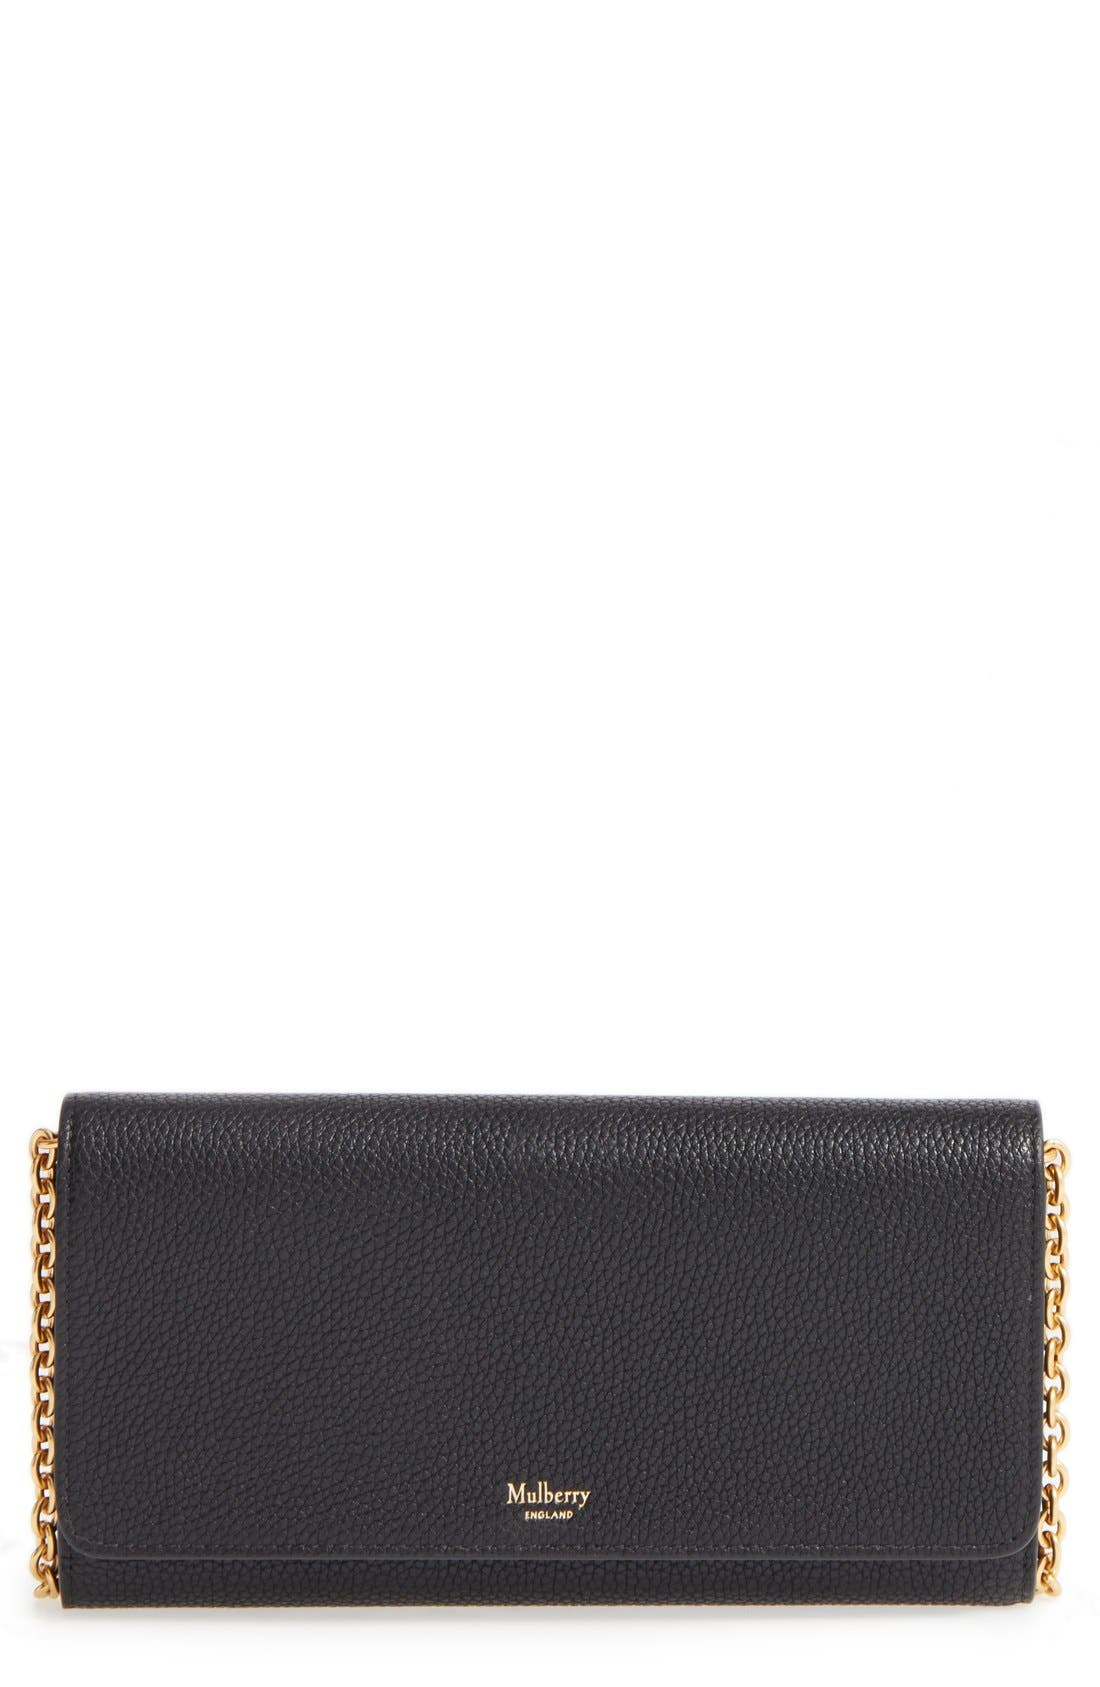 'Continental - Classic' Convertible Leather Clutch,                             Main thumbnail 1, color,                             Black